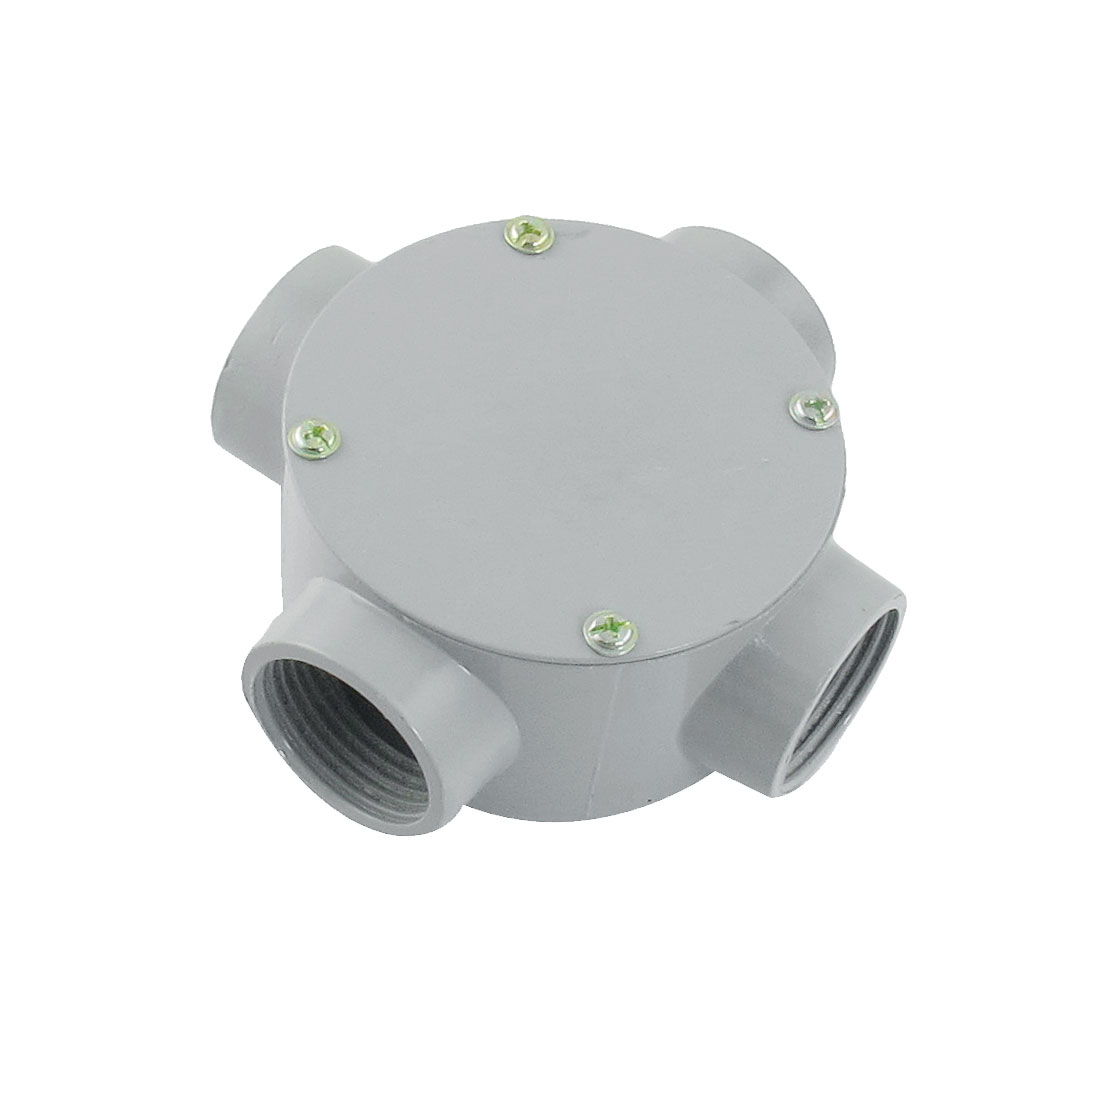 "G1"" Right Angle Four Hole Connecting Metal Round Water-Proof Junction Box"